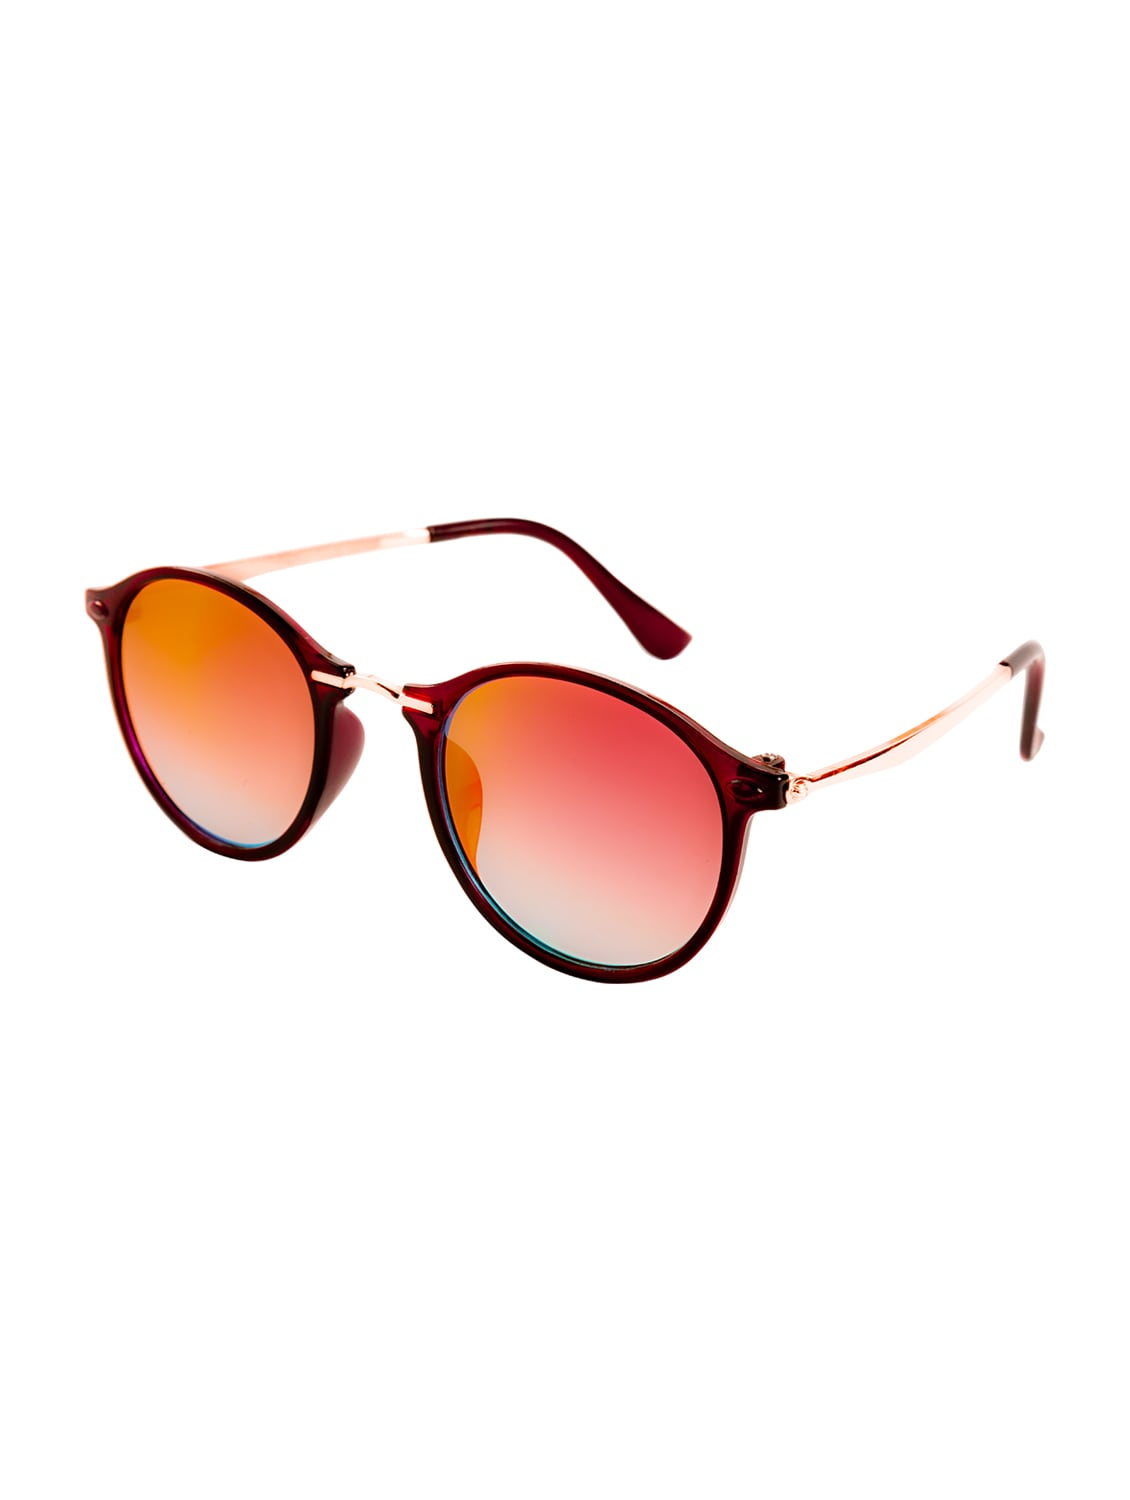 5769e7ec50 Buy Uv Protected Oval Sunglasses by Thewhoop - Online shopping for Men  Sunglasses in India